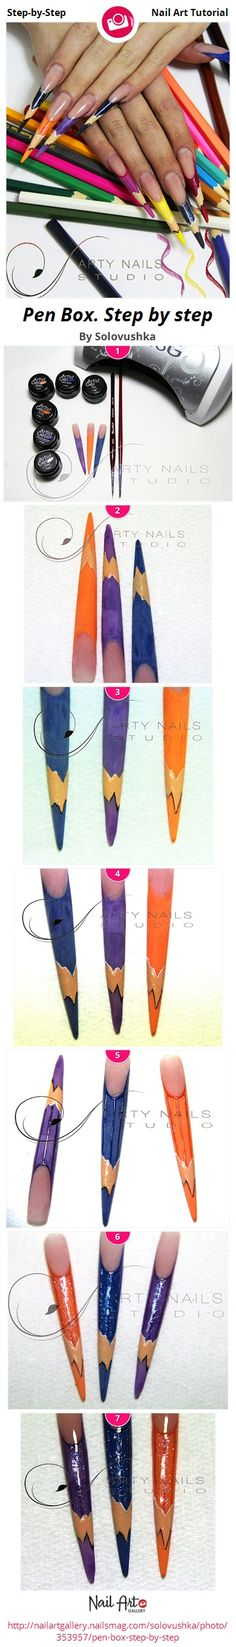 Color Pencil- Nail Art Step-by-step Tutorial